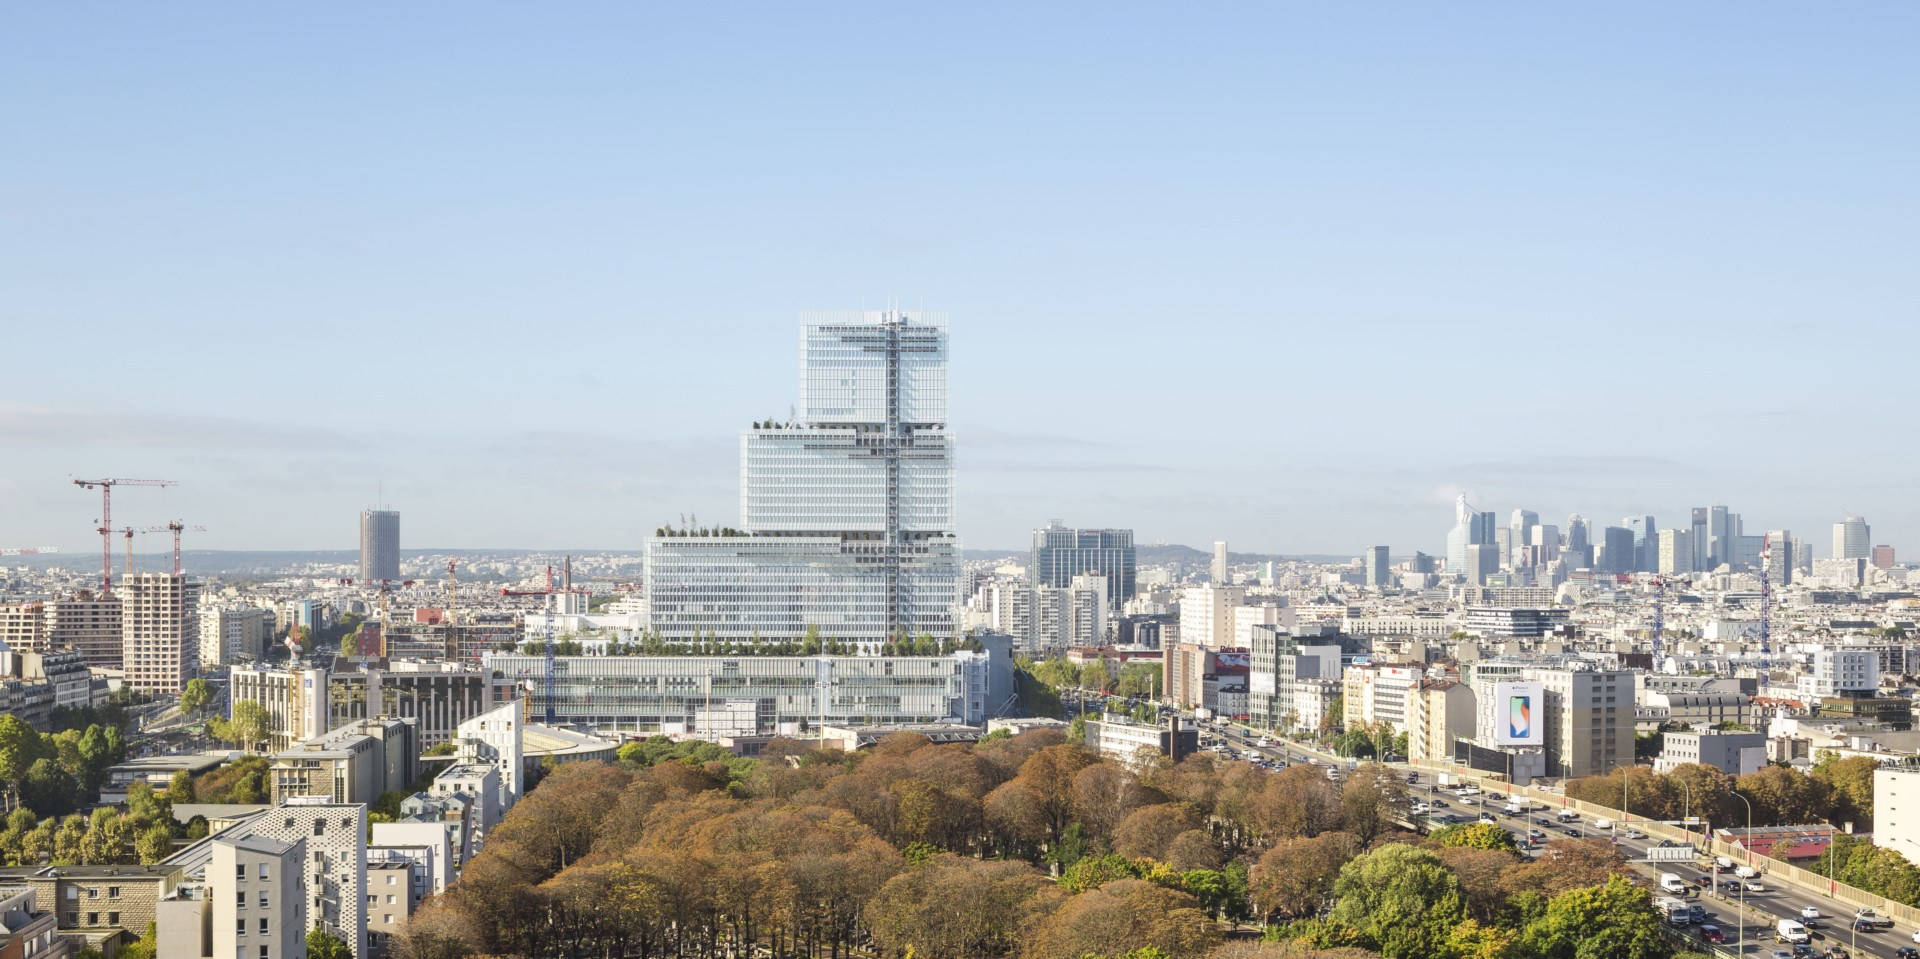 Europe's most beautiful skyscrapers at the 2018 CTBUH Awards